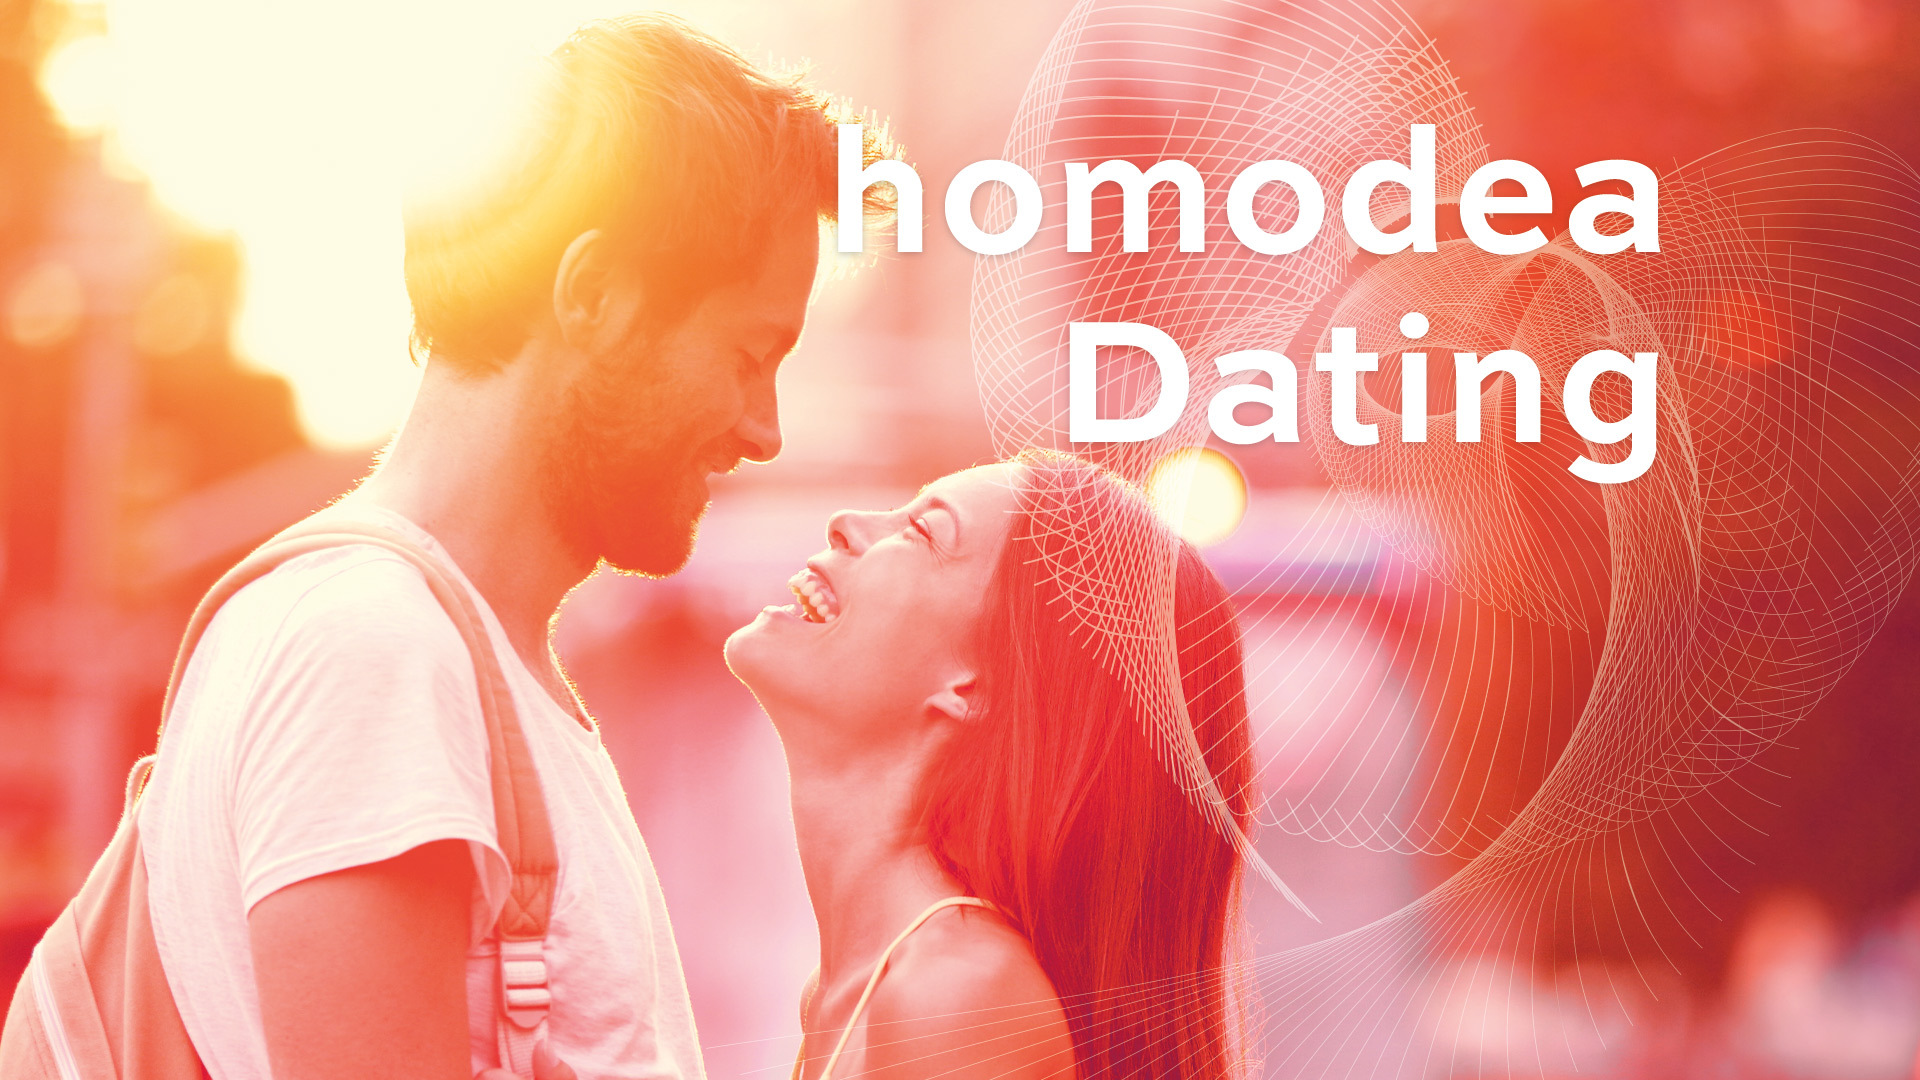 homodea-dating